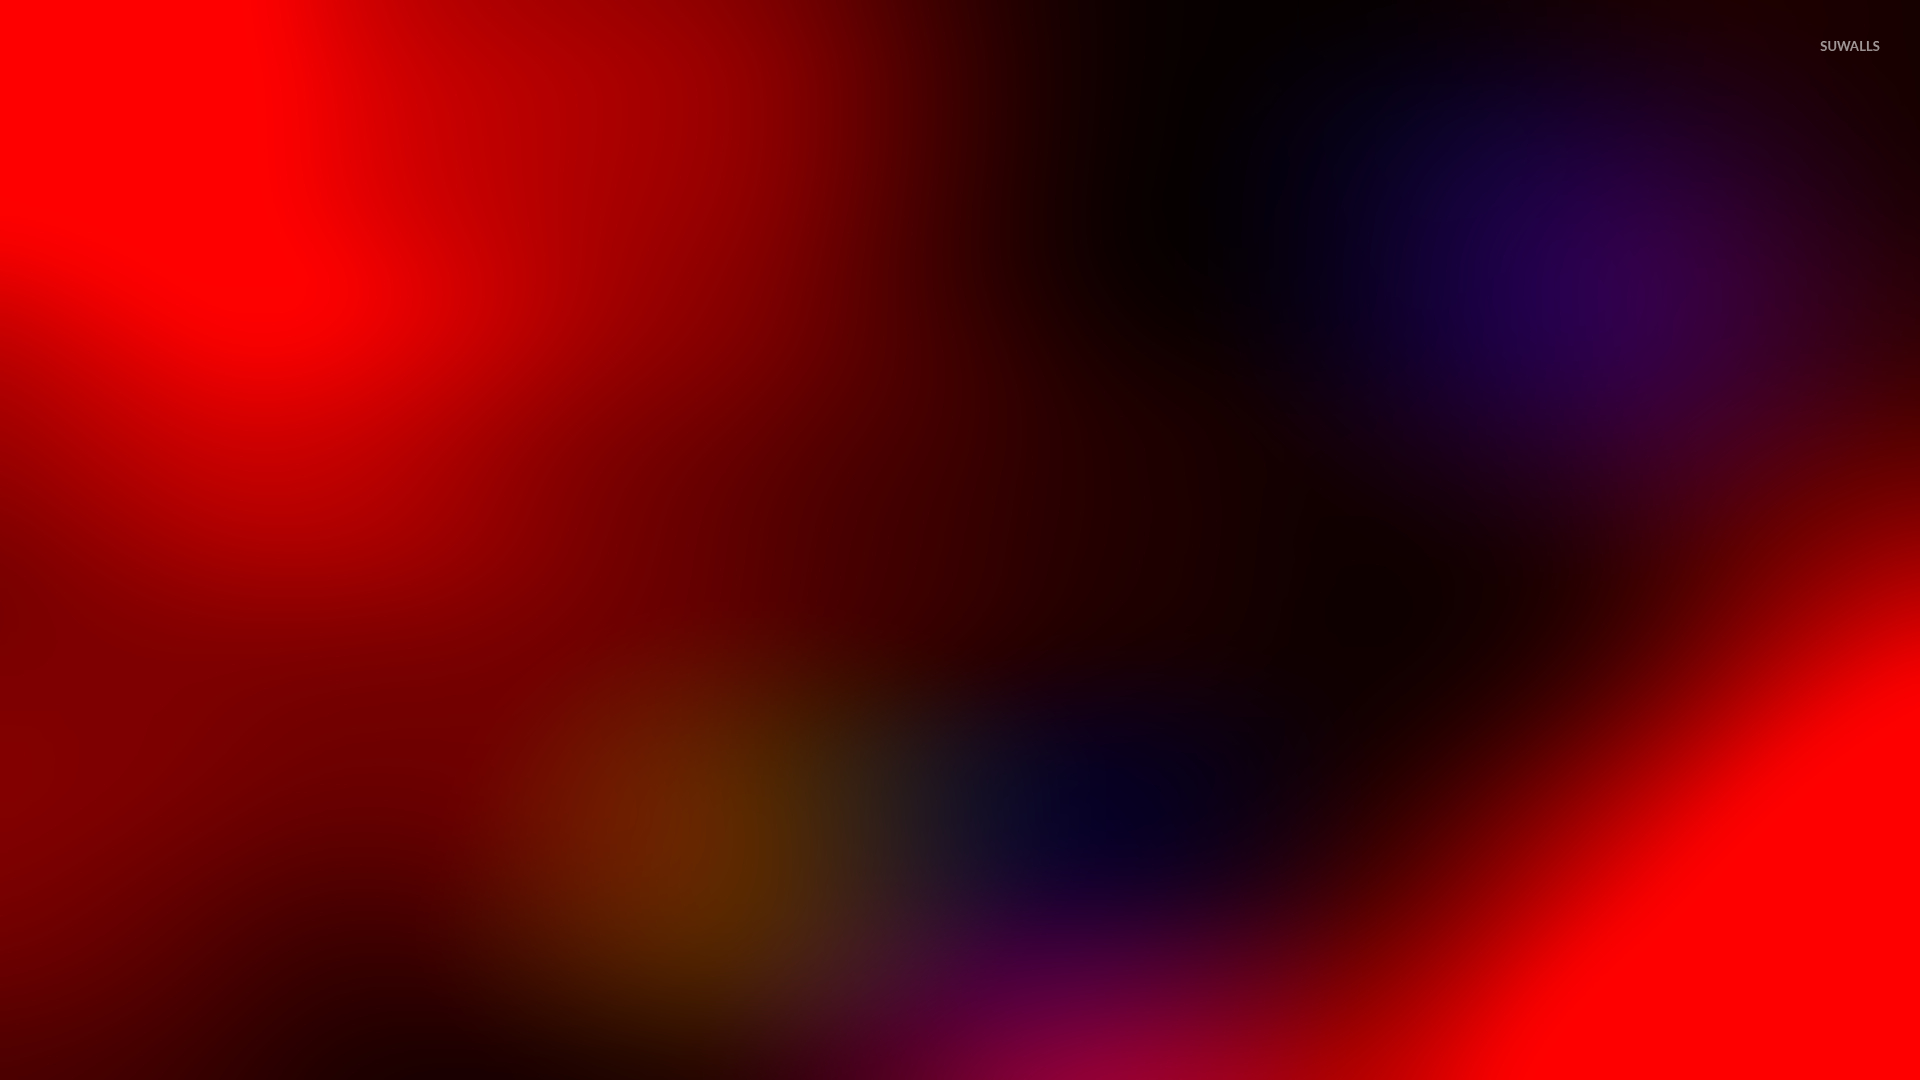 Red blur wallpaper - Abstract wallpapers - #26954